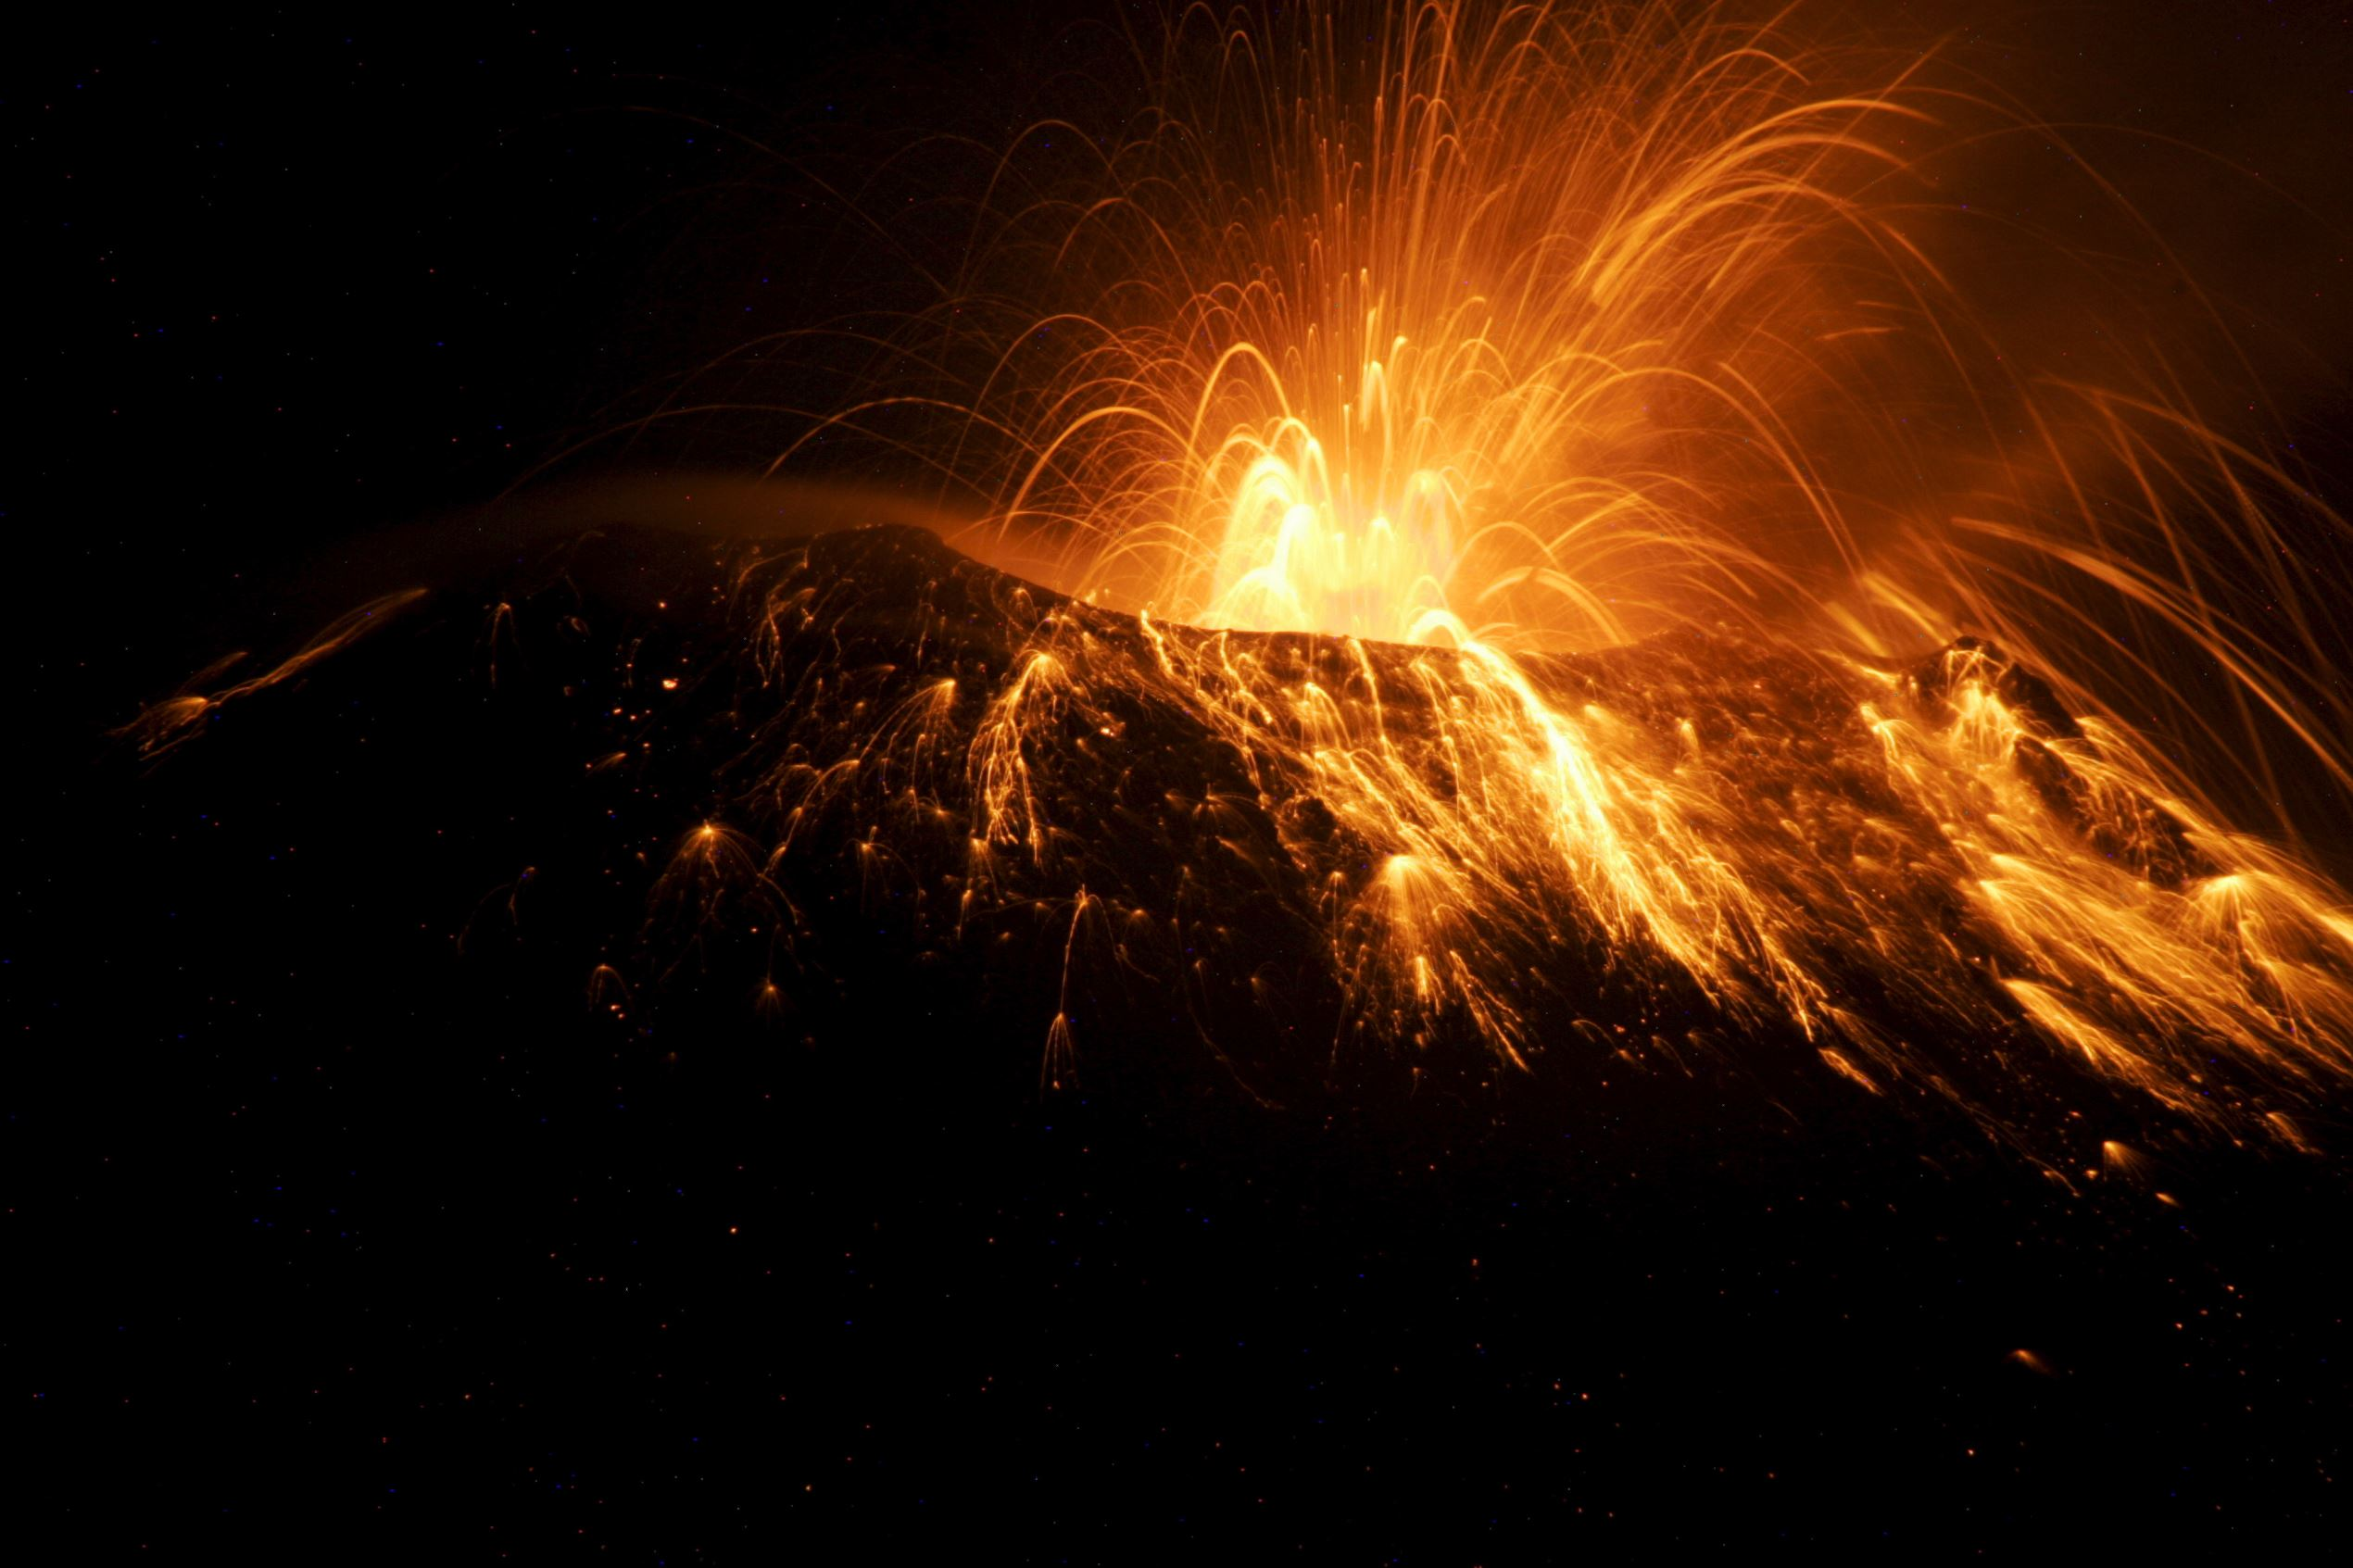 Слайд 28 из 86: Ecuador's Tungurahua volcano spews smoke and ash near Banos March 5, 2016. REUTERS/Carlos Campana EDITORIAL USE ONLY. NO RESALES. NO ARCHIVE TPX IMAGES OF THE DAY